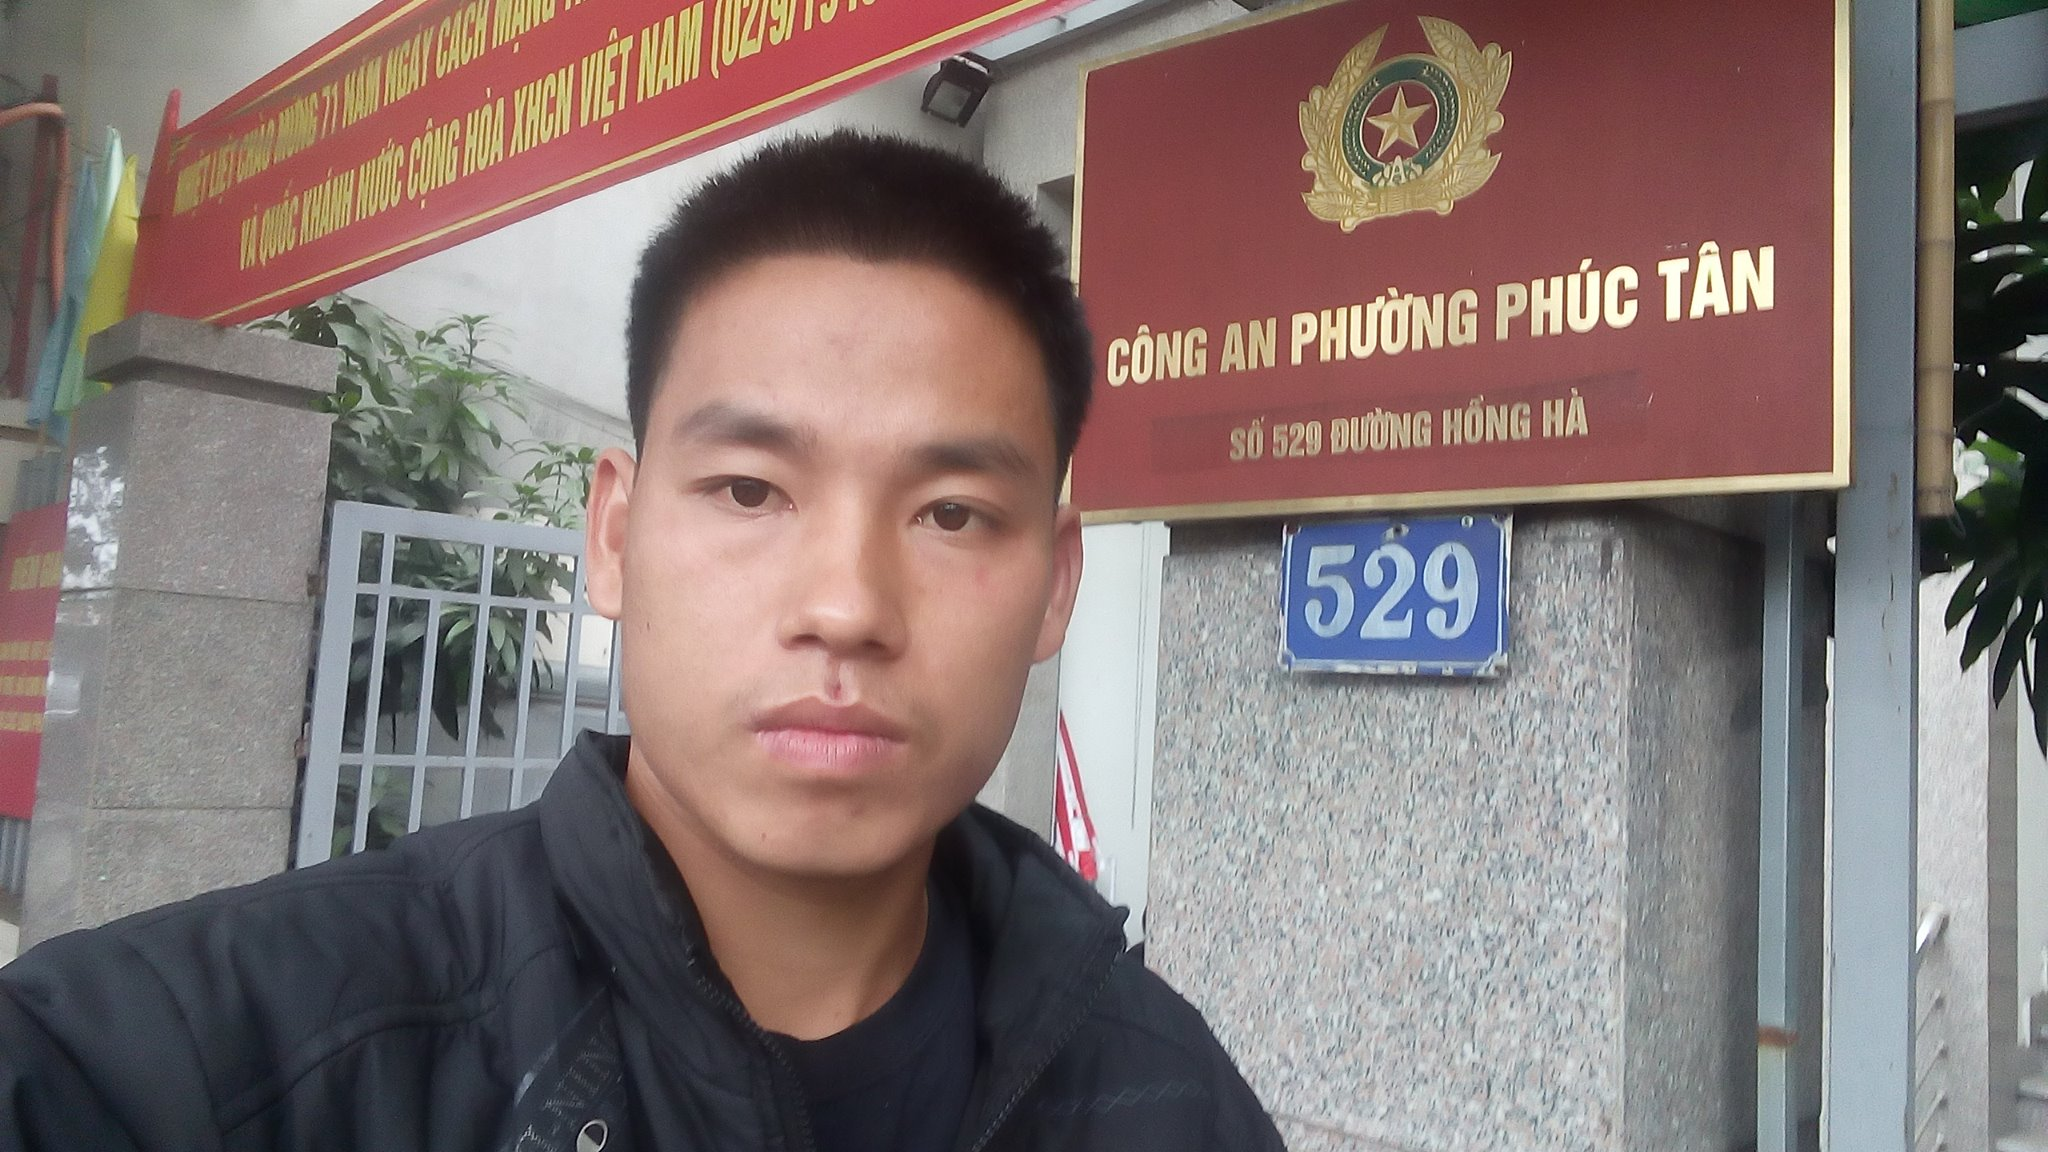 Trịnh Bá Tư in a selfie posted on Facebook after his release, outside of police quarters in Phúc Tân Ward. Image: Facebook/Trịnh Bá Tư